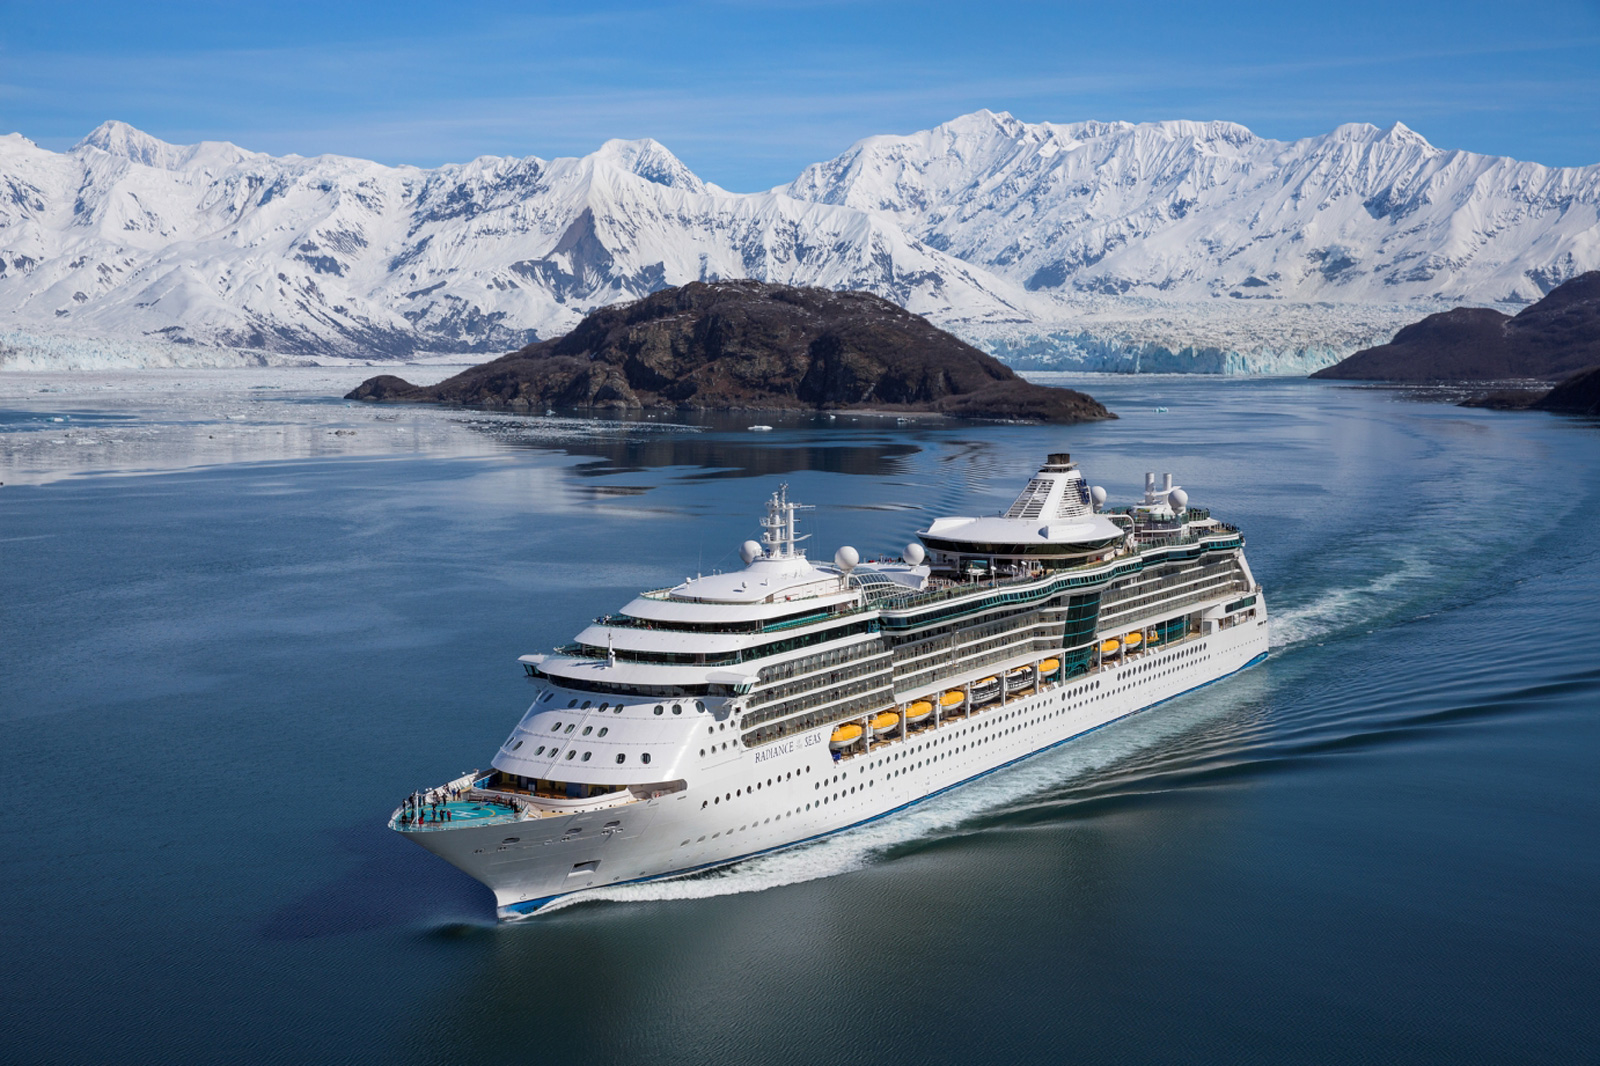 The Freedom of the Seas